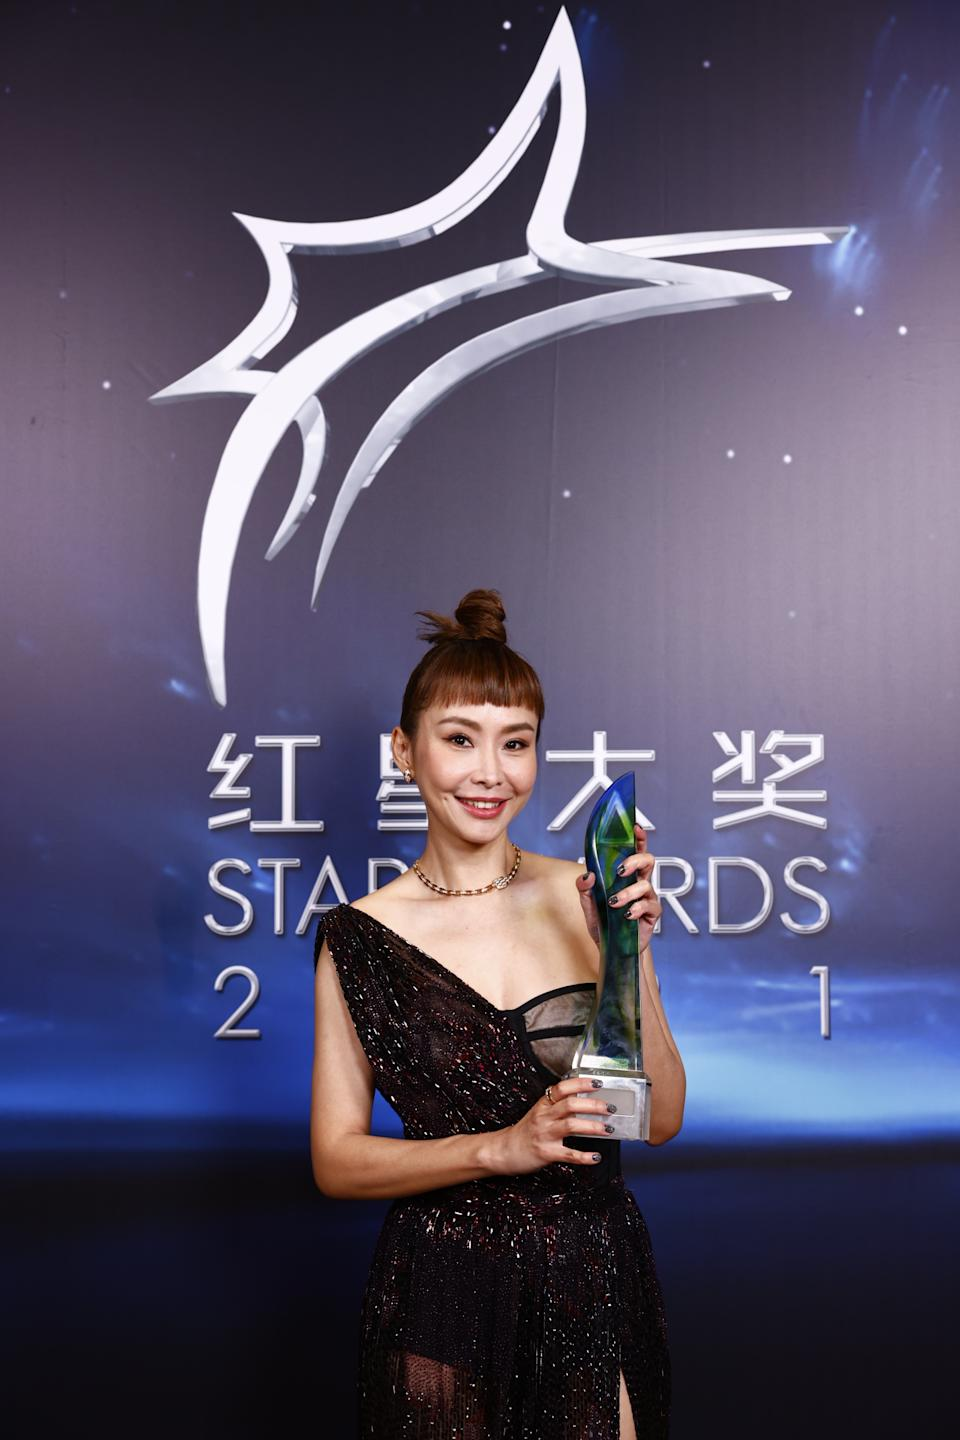 Ann Kok at Star Awards held at Changi Airport on 18 April 2021. (Photo: Mediacorp)